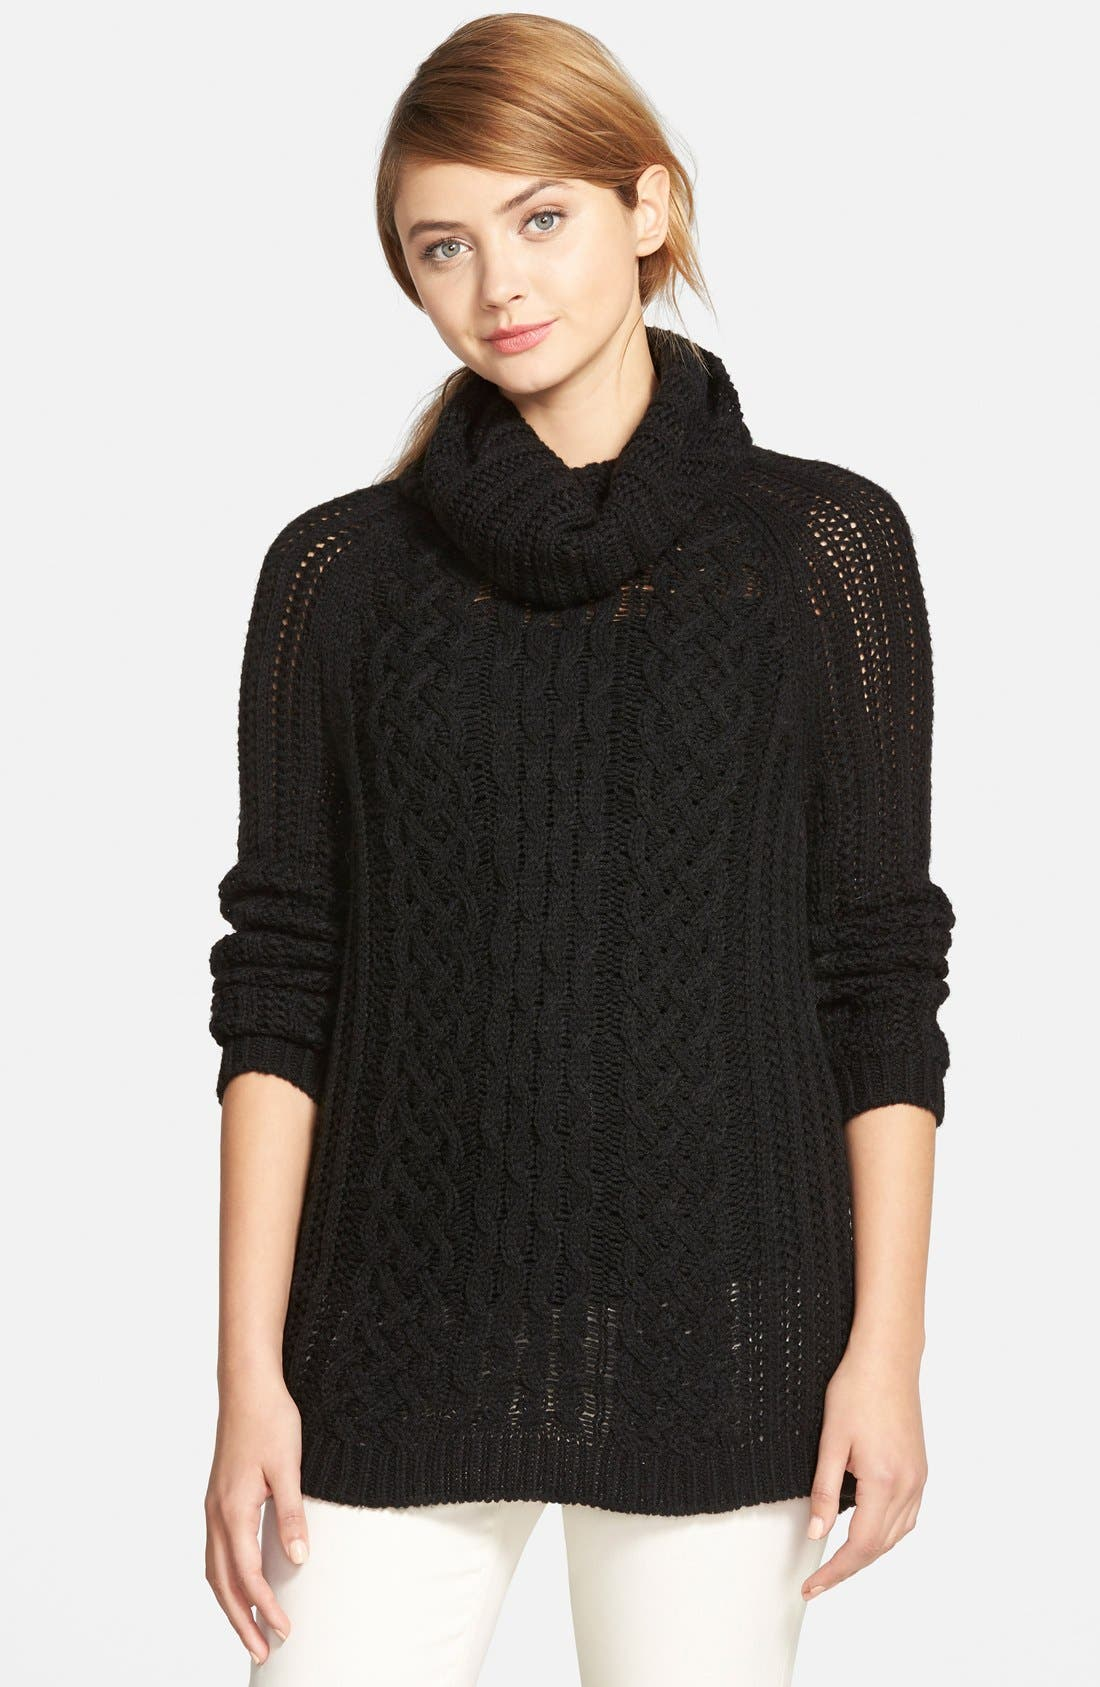 'Sleepy Hollow' Turtleneck Sweater,                             Main thumbnail 1, color,                             001